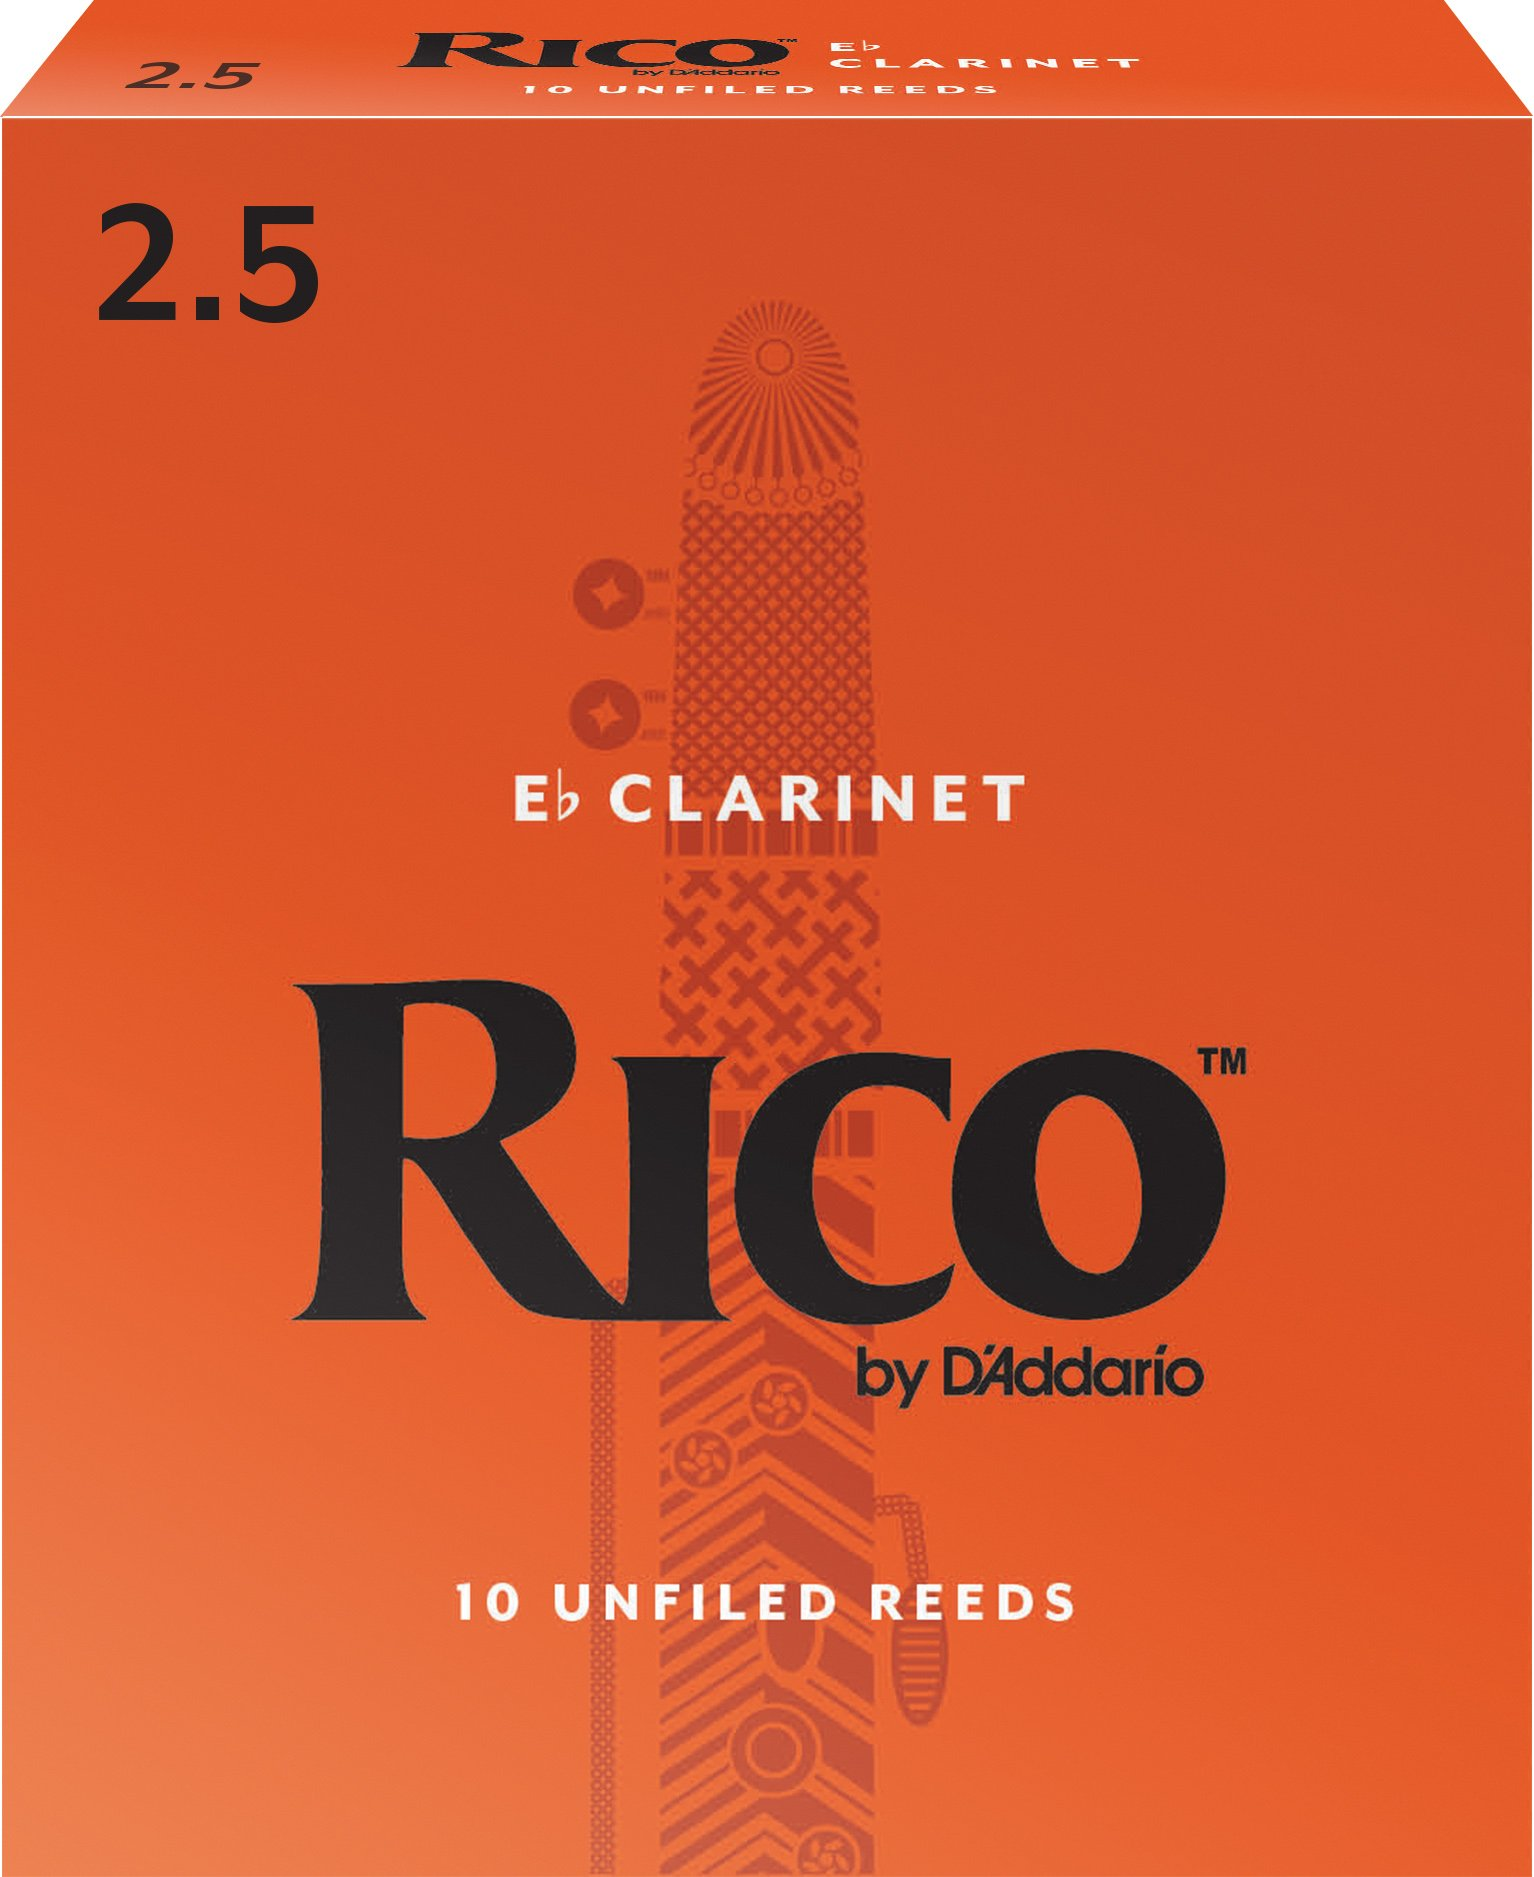 Rico by D'Addario Eb Clarinet Reeds, Strength 2.5, 10-pack